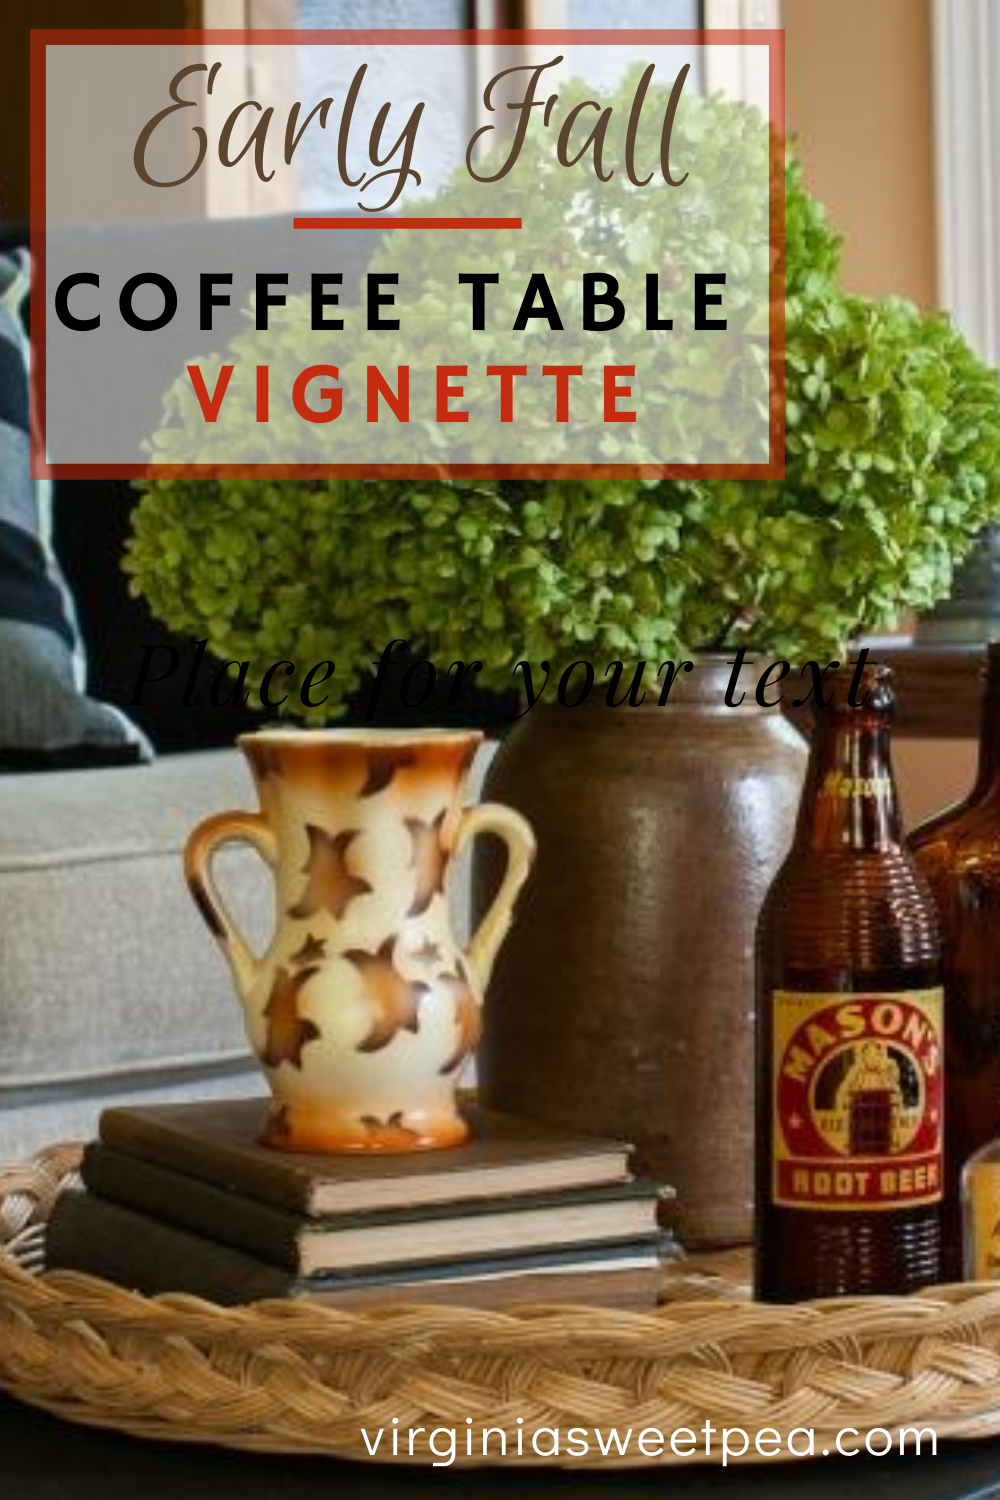 Early Fall Coffee Table Vignette - Get ideas for decorating a coffee table for fall. #falldecor #fallcoffeetable #fallvignette #coffeetabledecor #falldecorations via @spaula